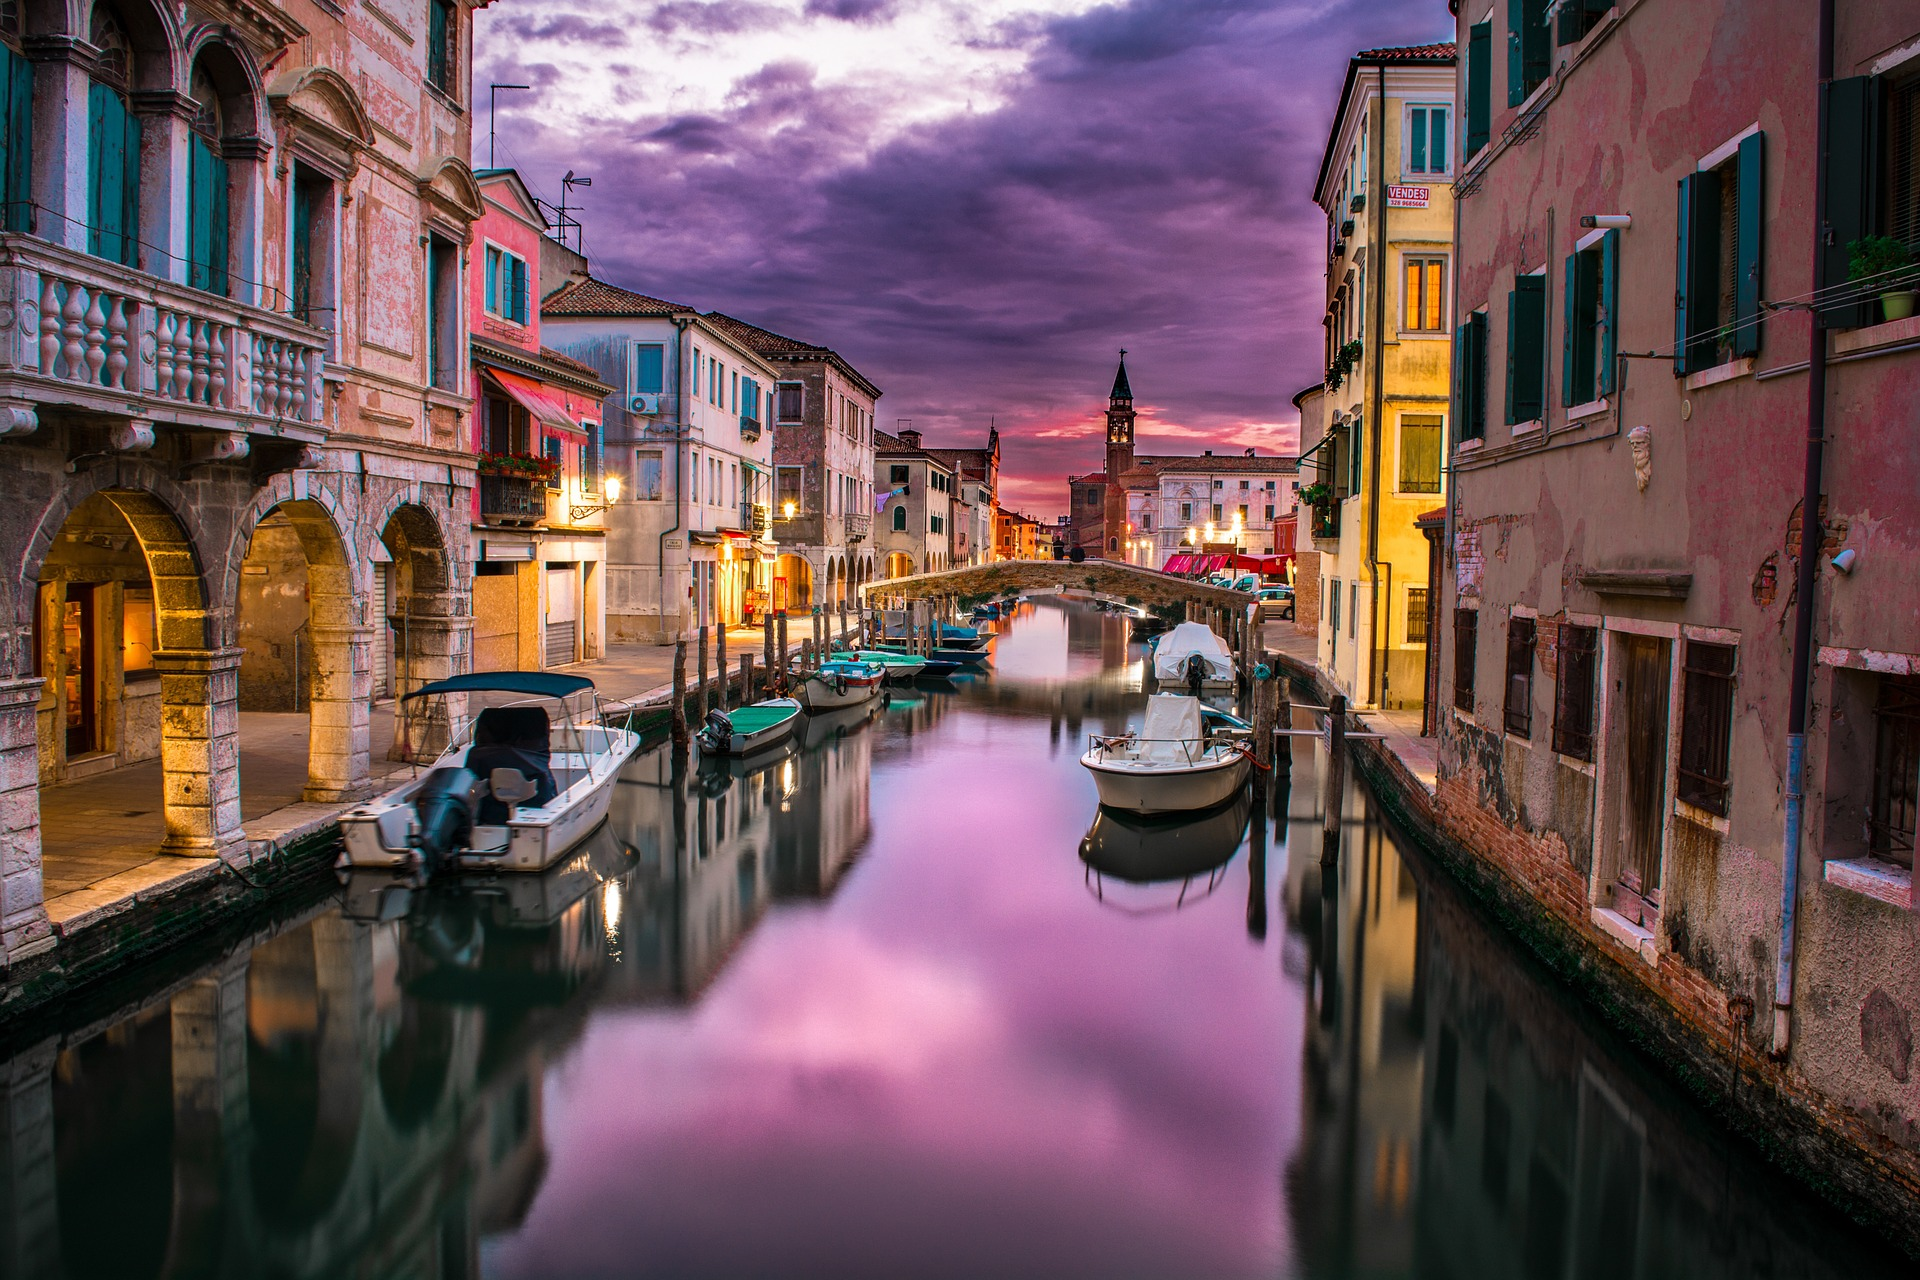 Canals of Venice at sunset